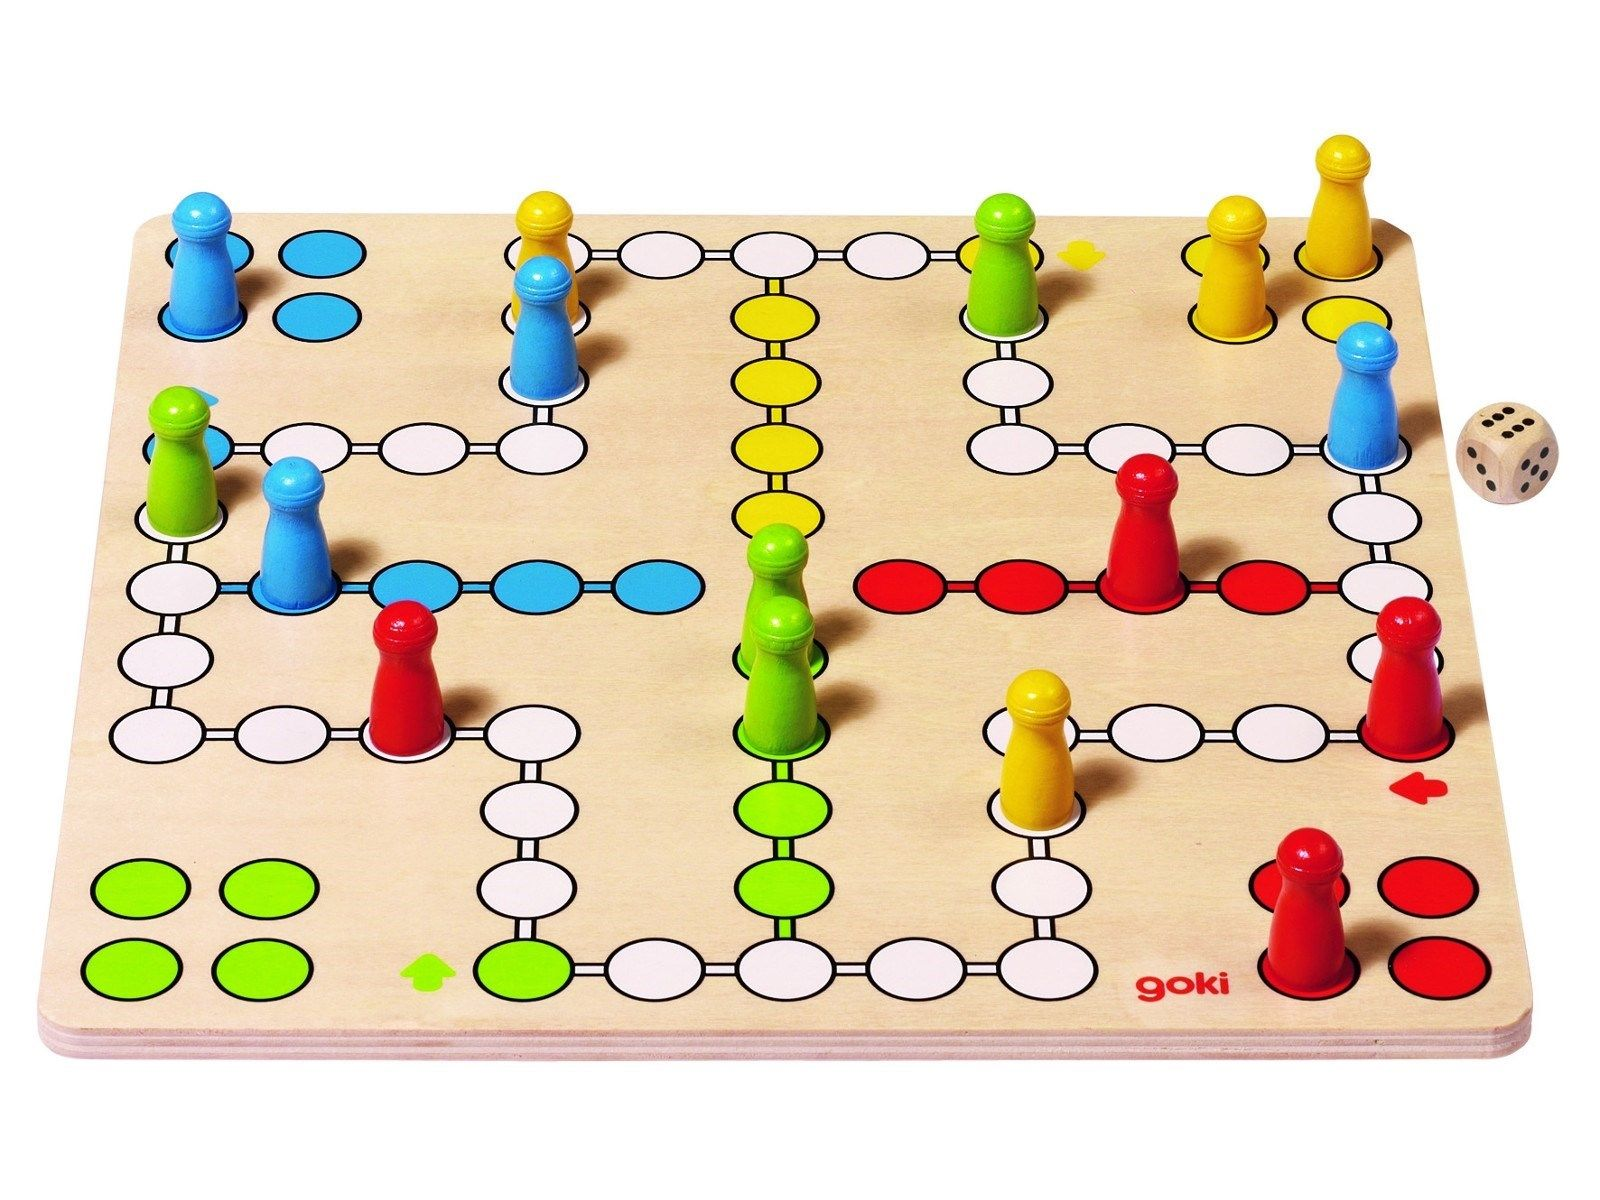 brettspiel = board game | Deutsch | Pinterest